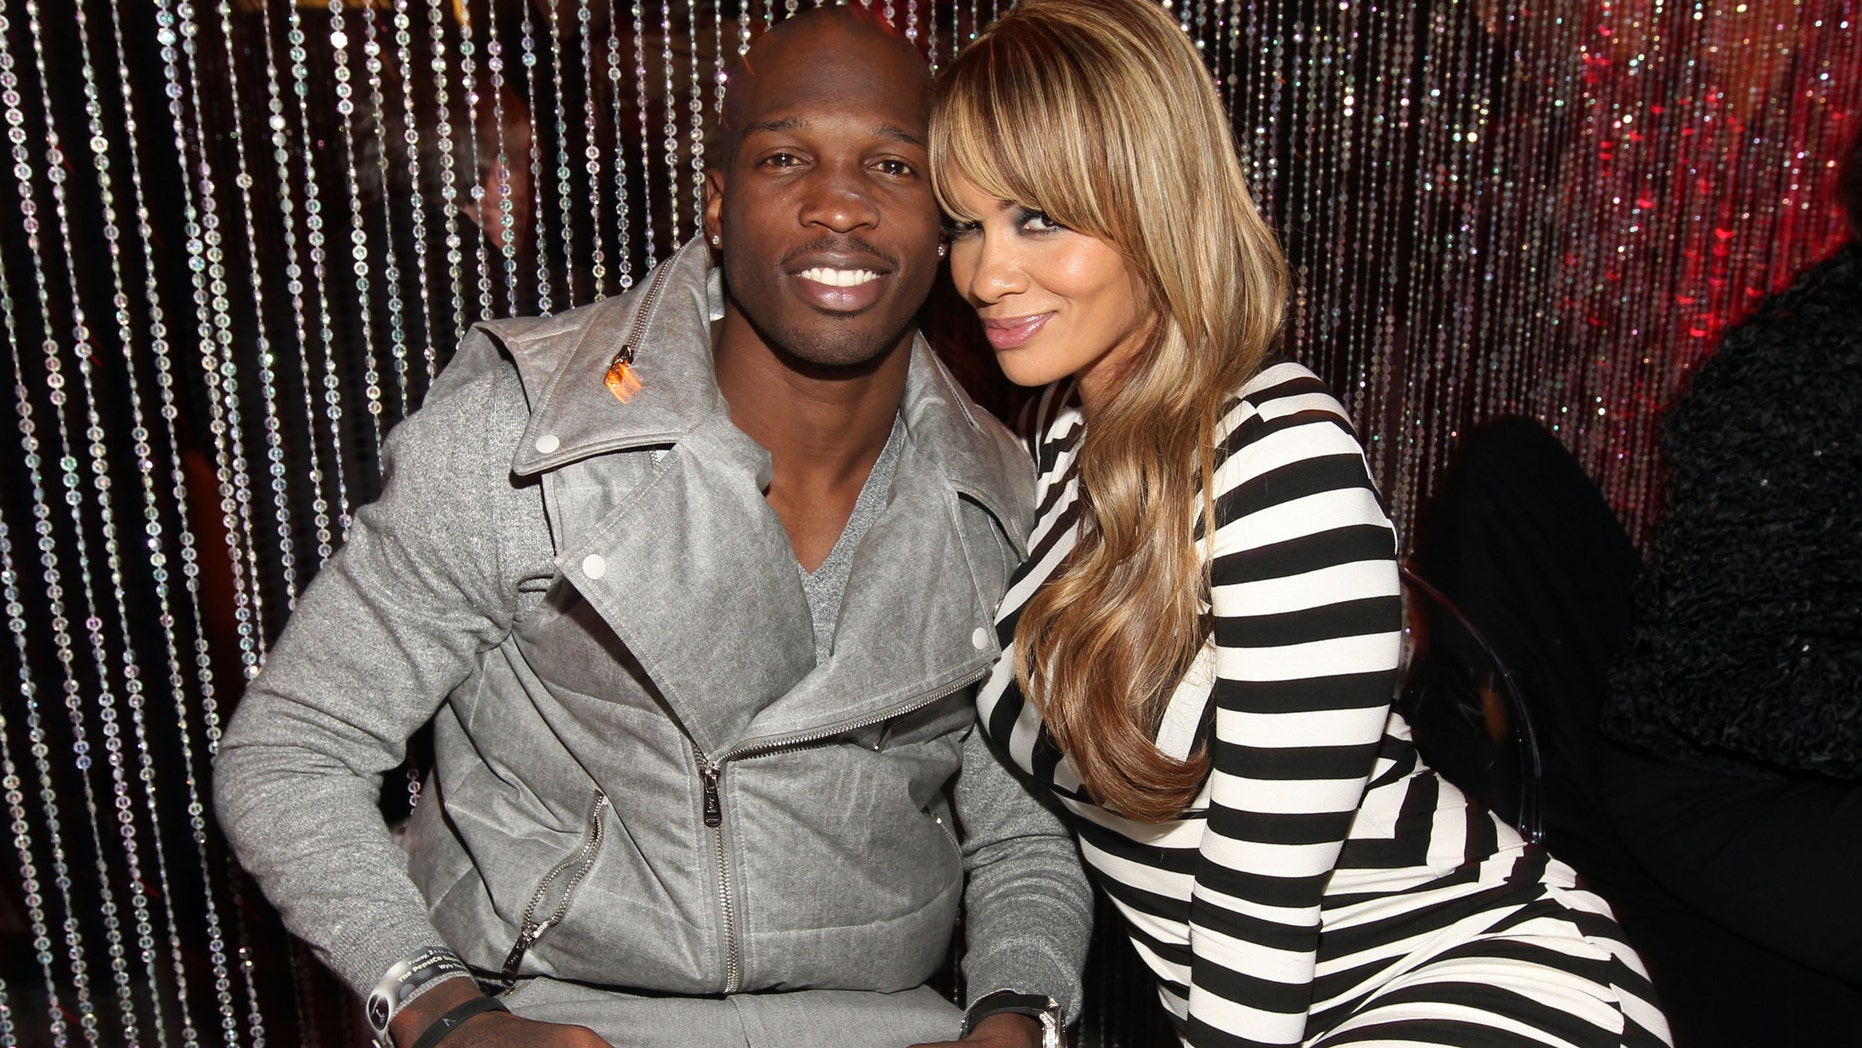 DALLAS, TX - FEBRUARY 04:  NFL player Chad Johnson of the Cincinnati Bengals and Evelyn Lozada attend the PepsiCo Super Bowl Weekend Kickoff Party featuring Lenny Kravitz and DJ Pauly D at Wyly Theater on February 4, 2011 in Dallas, Texas.  (Photo by Christopher Polk/Getty Images for PepsiCo)